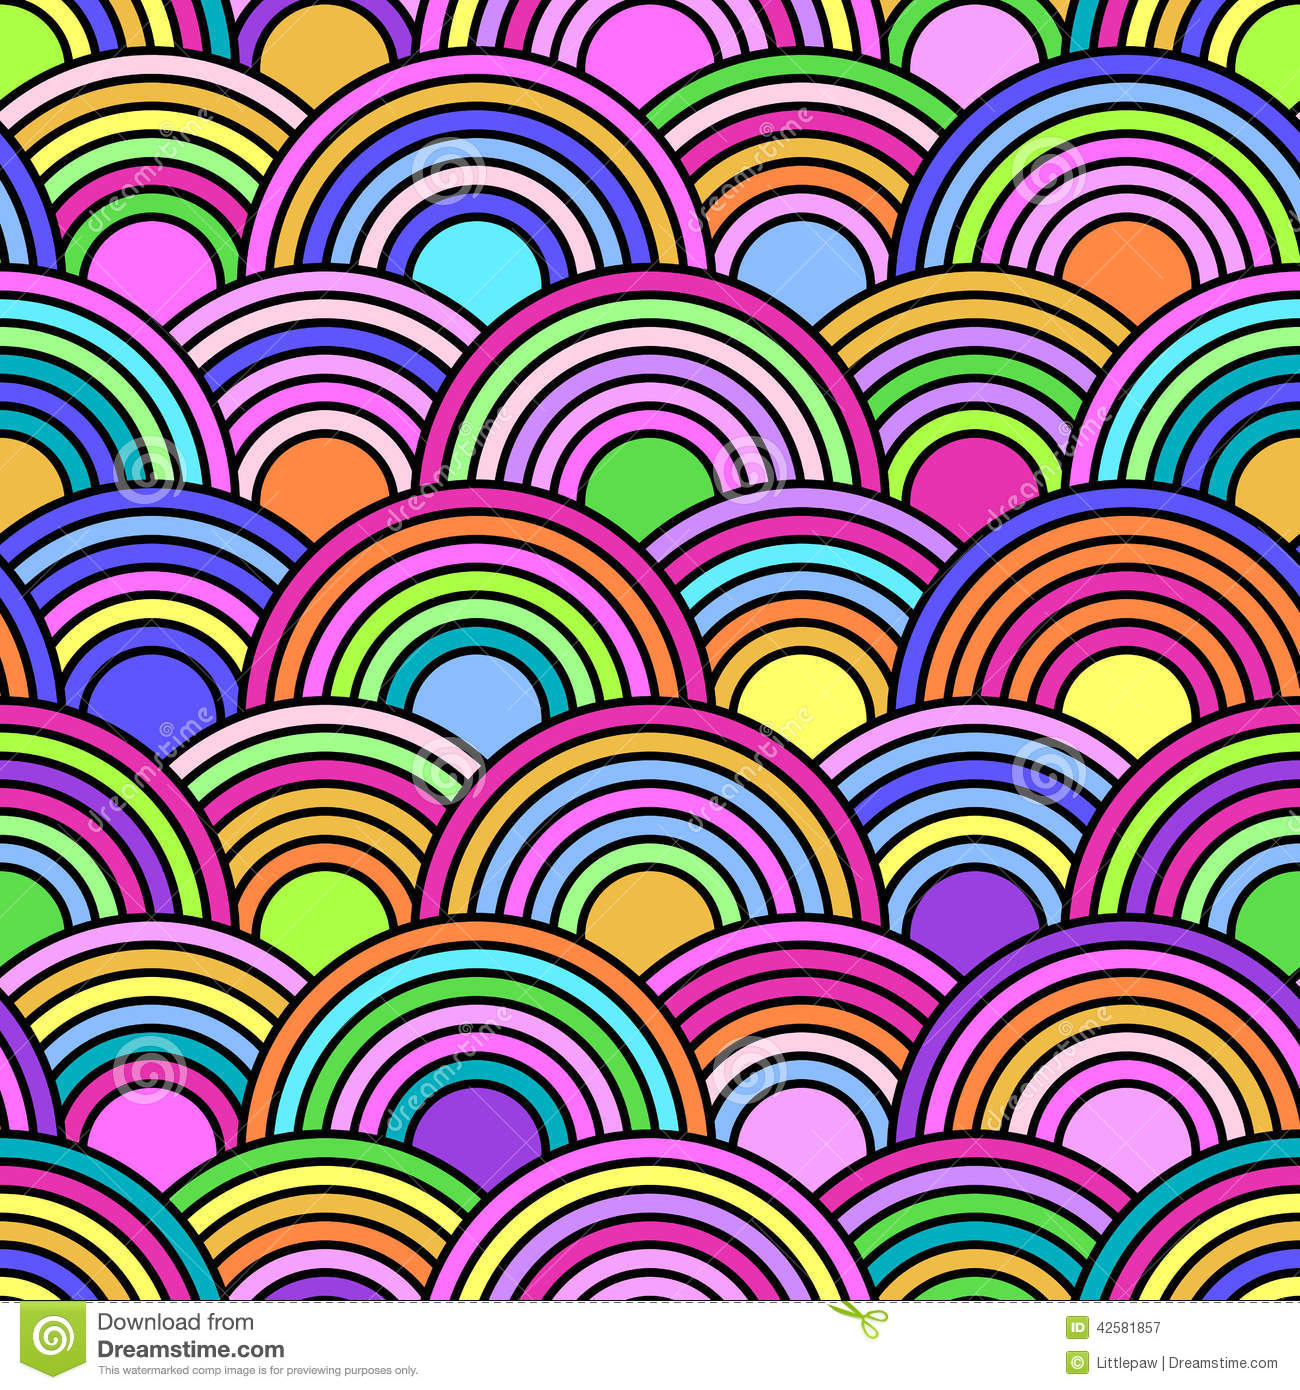 ... Seamless Pattern With Colorful Circles Stock Vector - Image: 42581857